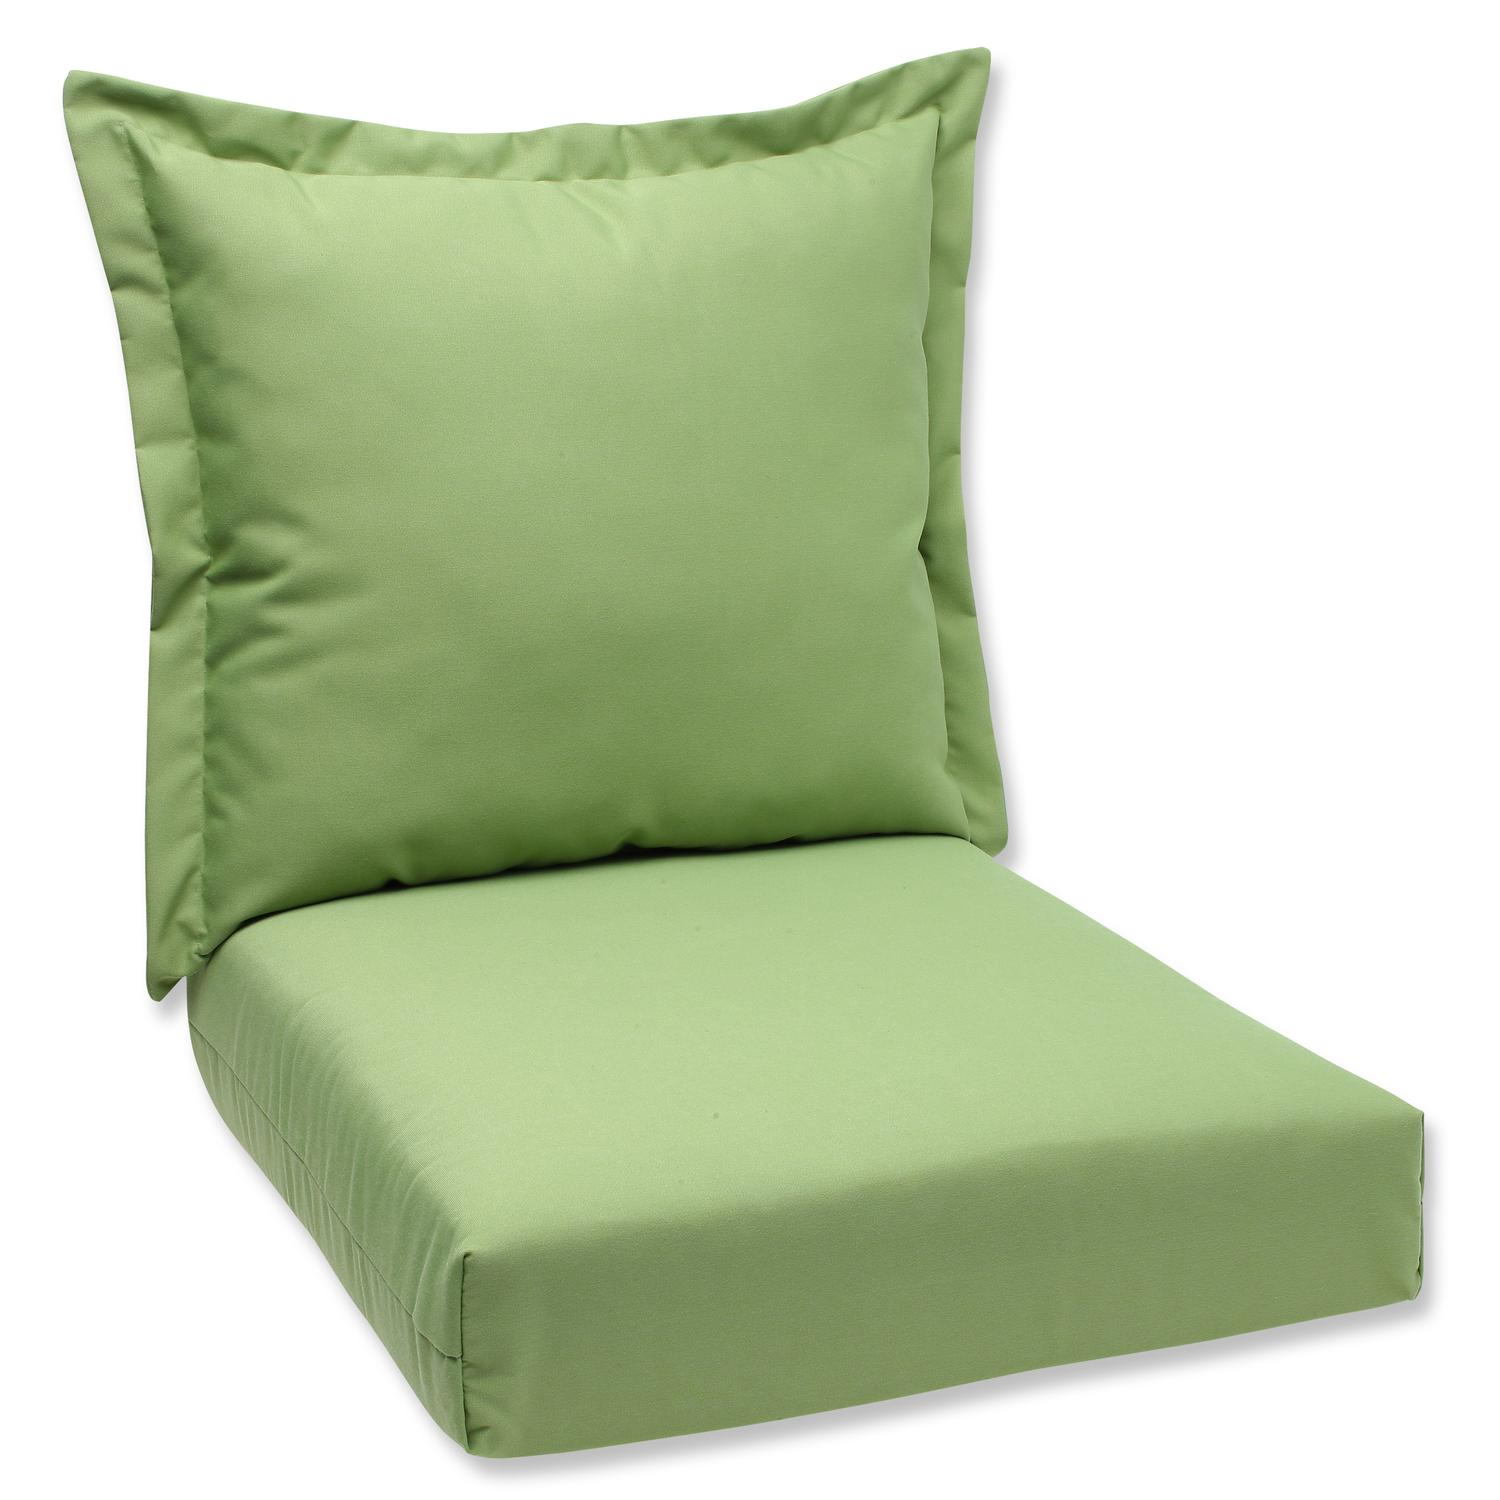 """44"""" Sunbrella Green Outdoor Patio Deep Seating Cushion and Back Pillow by CC Outdoor Living"""